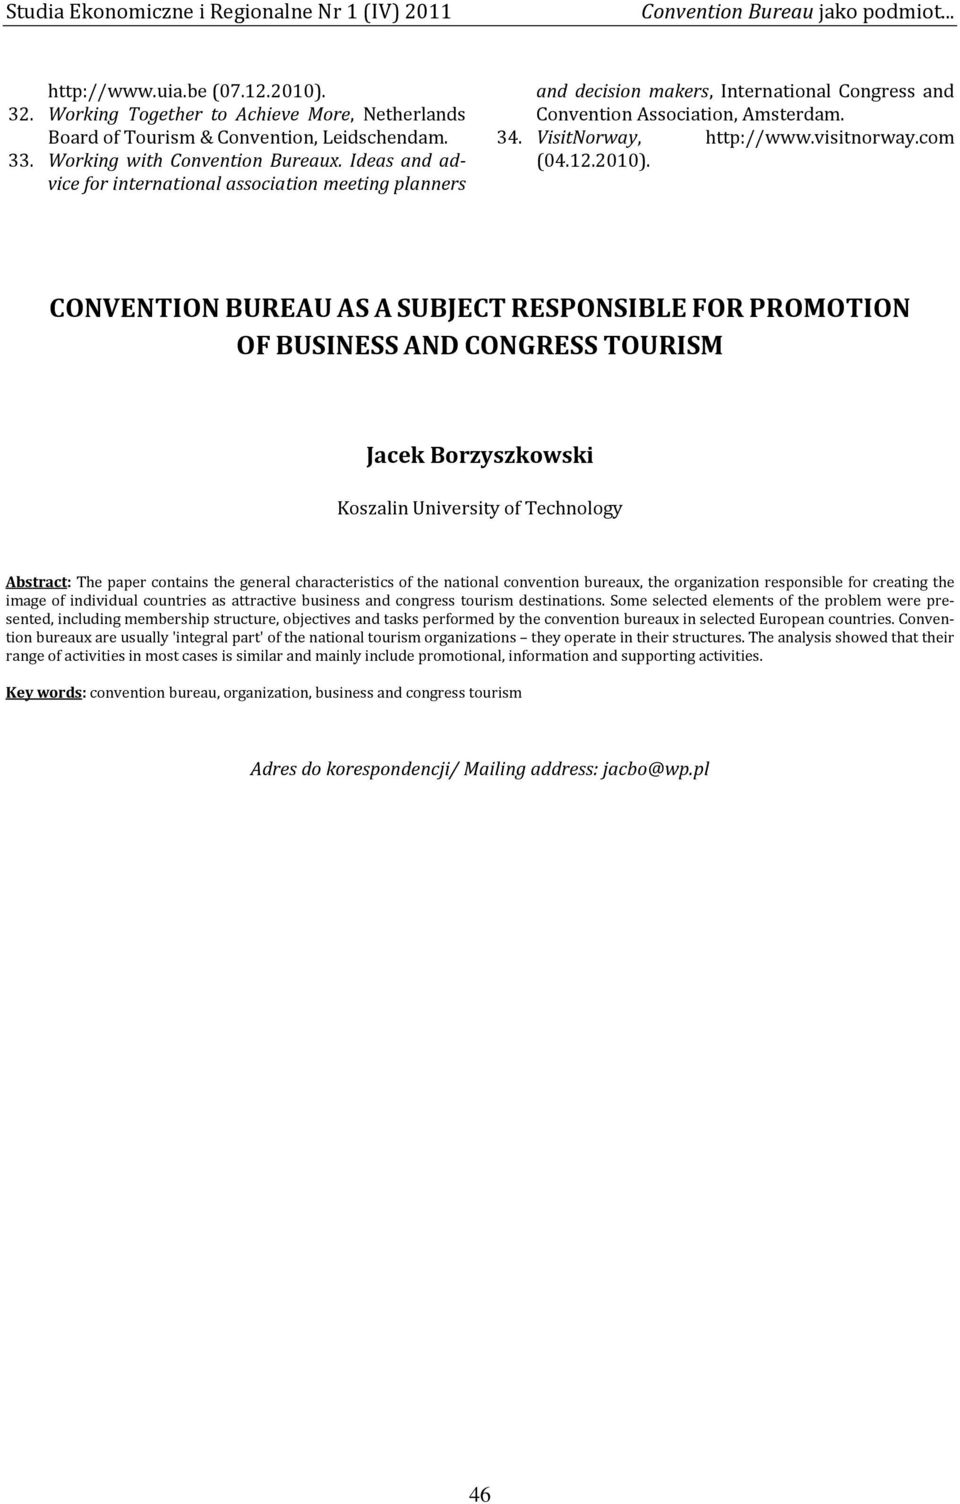 com CONVENTION BUREAU AS A SUBJECT RESPONSIBLE FOR PROMOTION OF BUSINESS AND CONGRESS TOURISM Jacek Borzyszkowski Koszalin University of Technology Abstract: The paper contains the general